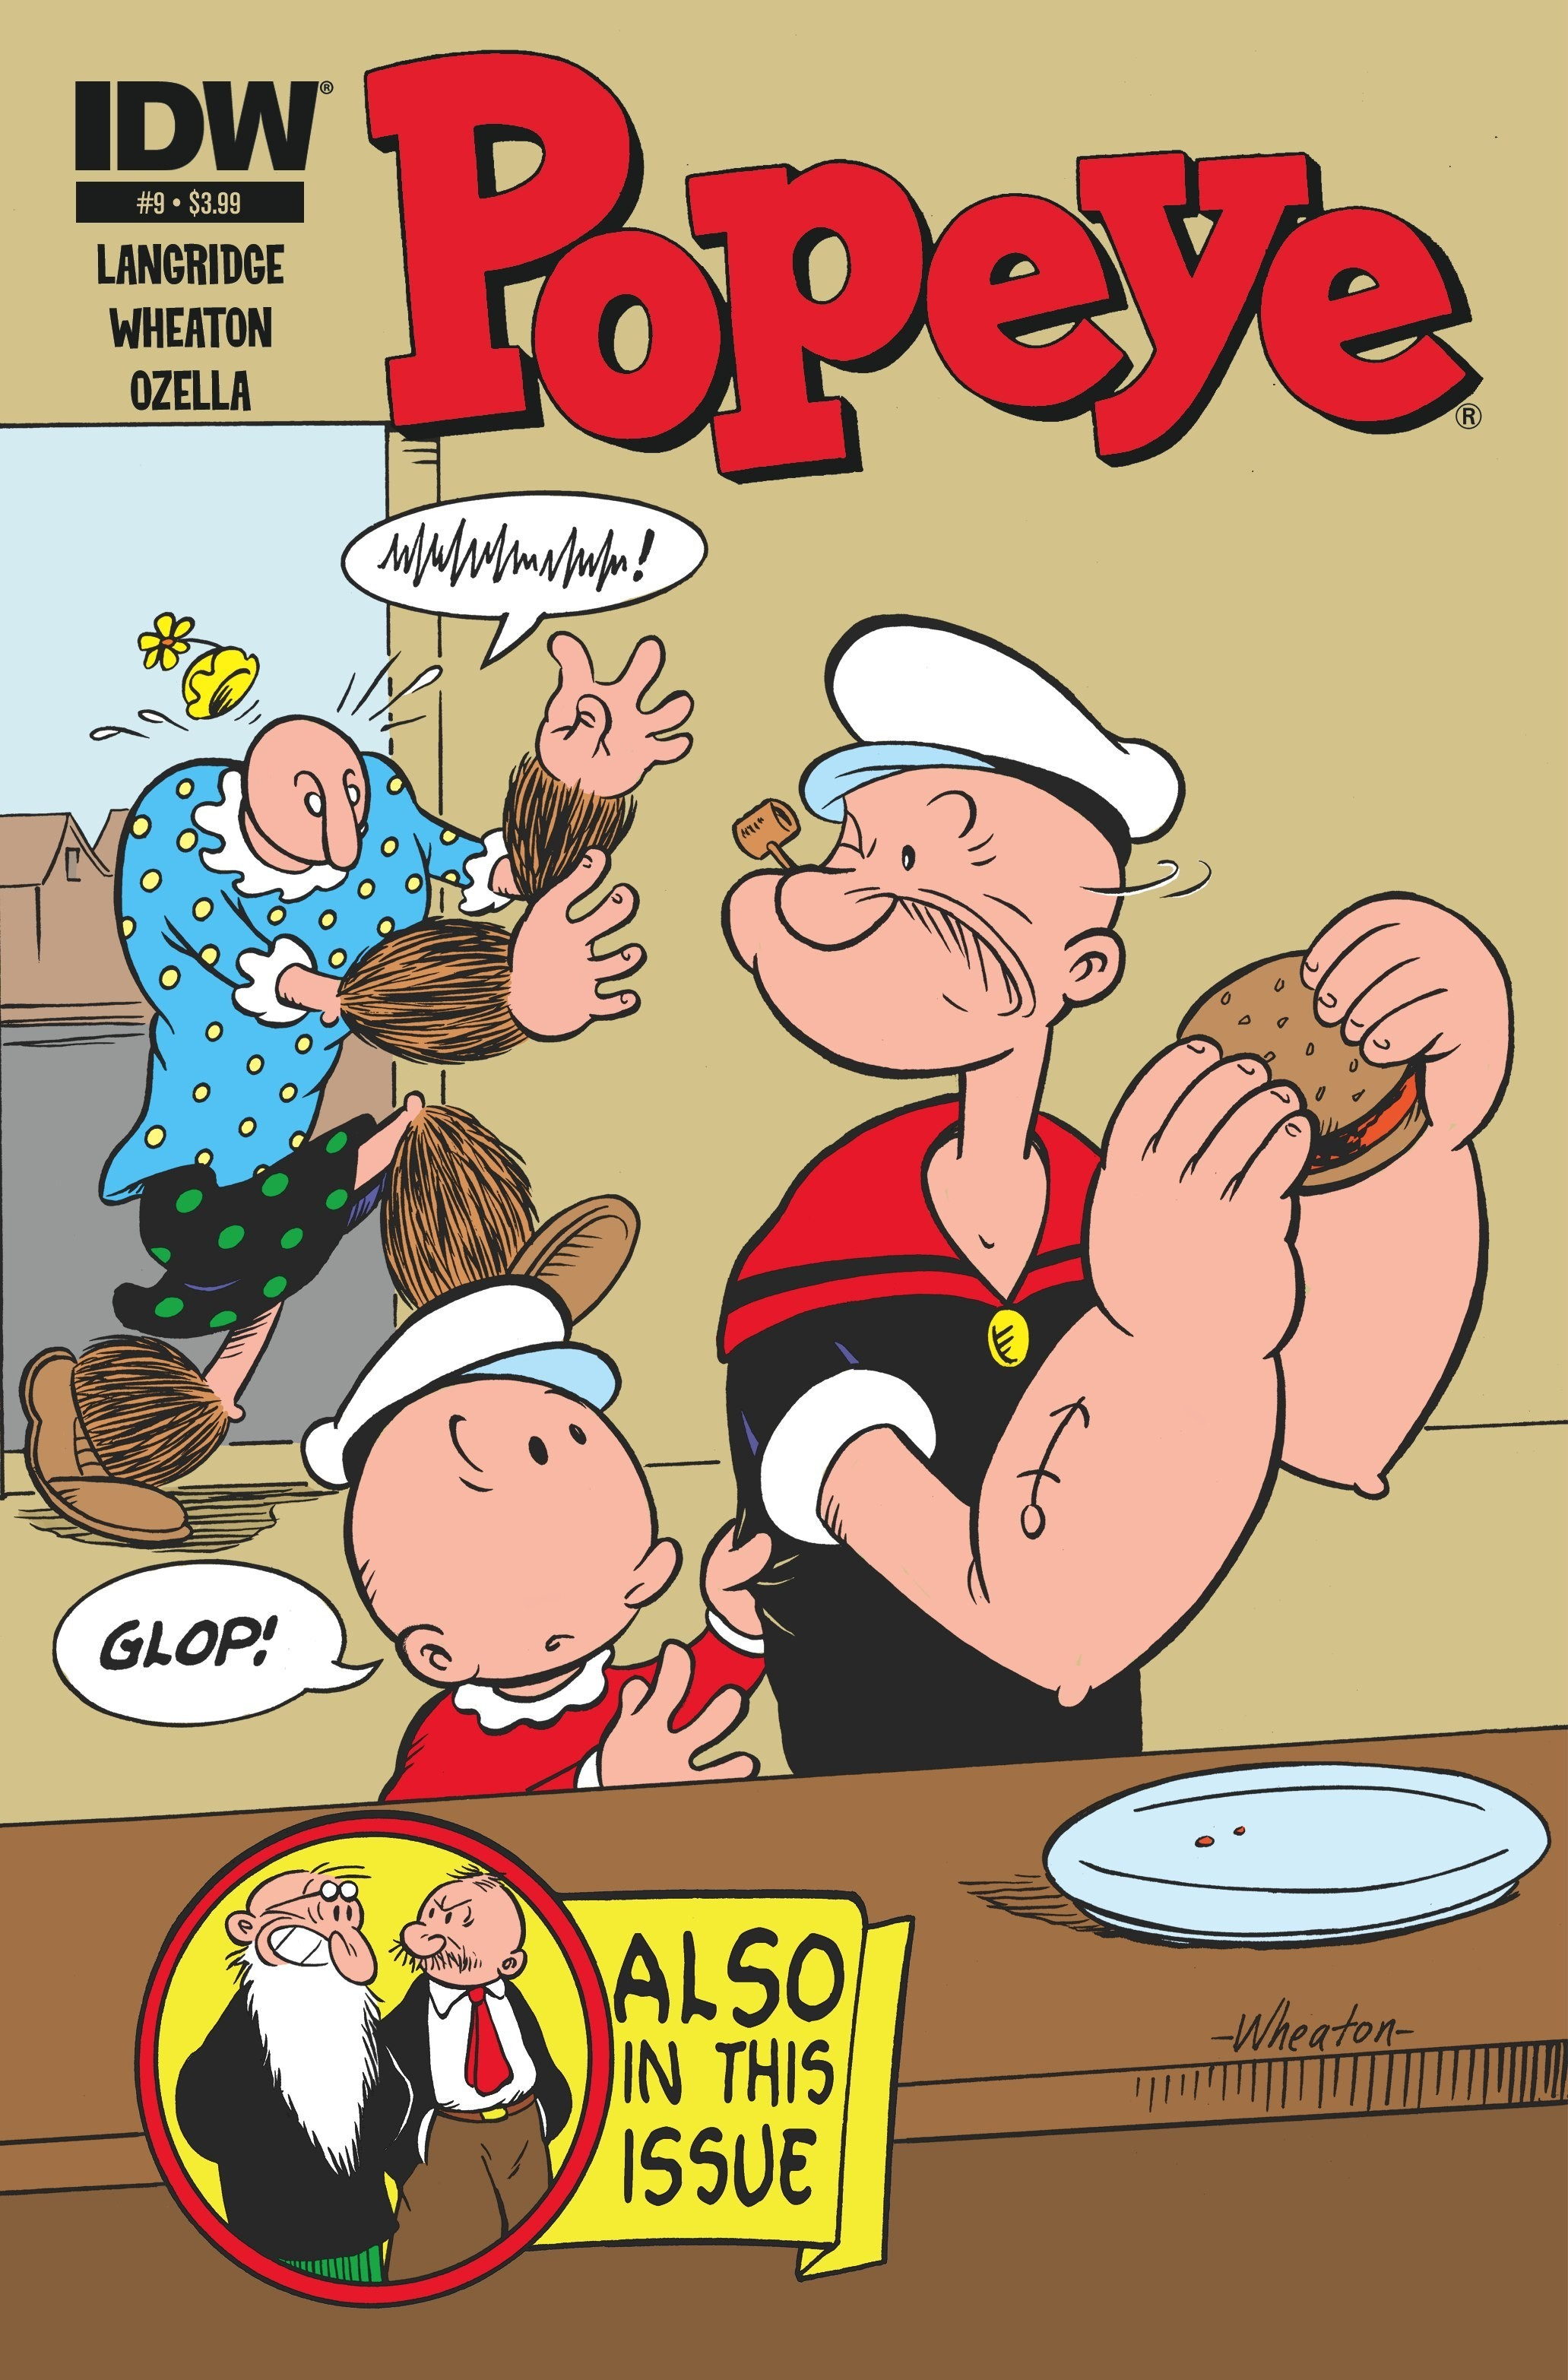 2063x3131 Pics Popeye Background For Free Image Wallpaper Download Â« Anime Cartoon  Wallpaper